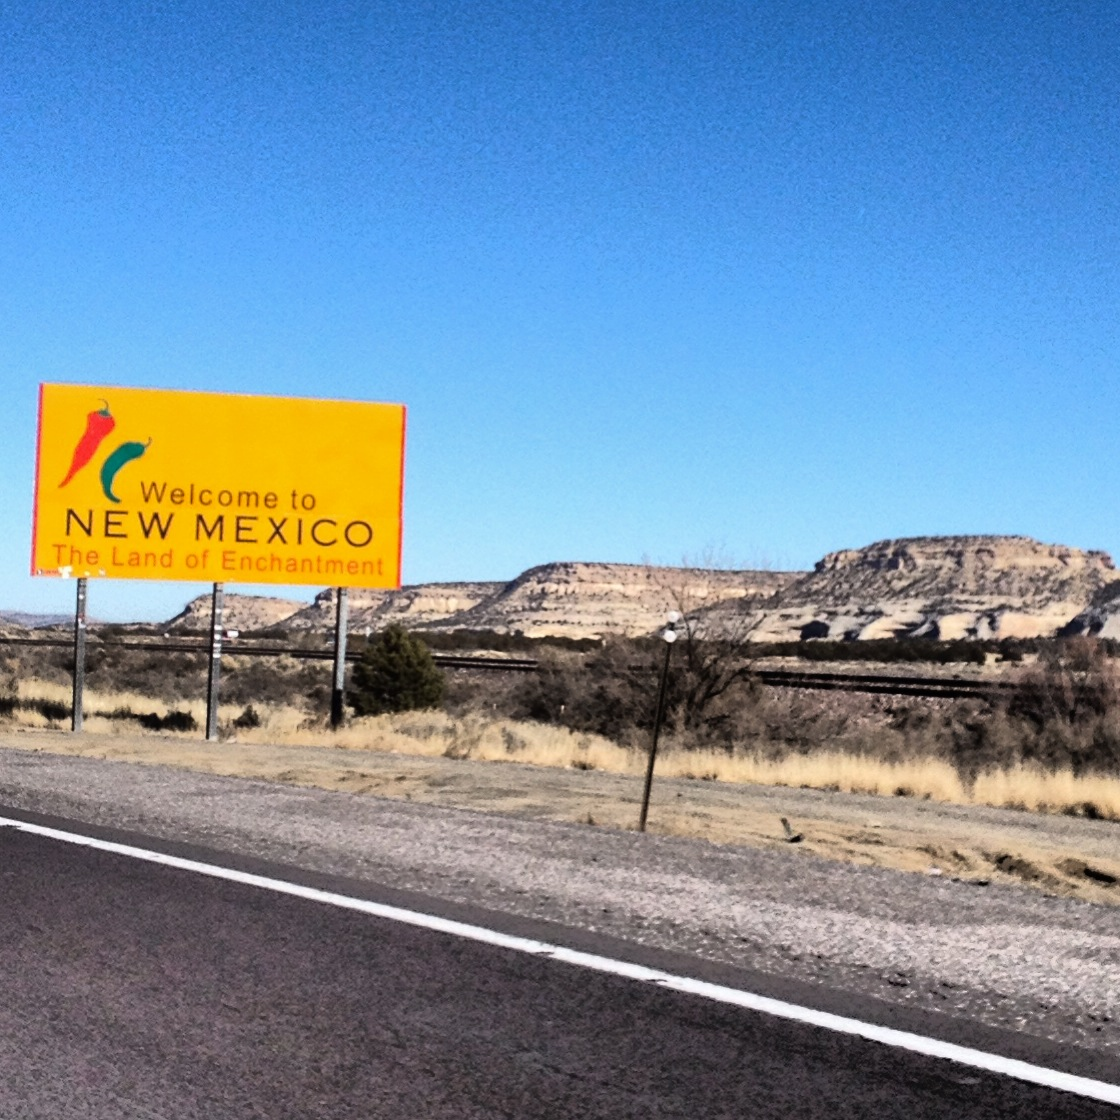 New Mexico, The Land of Enchantment